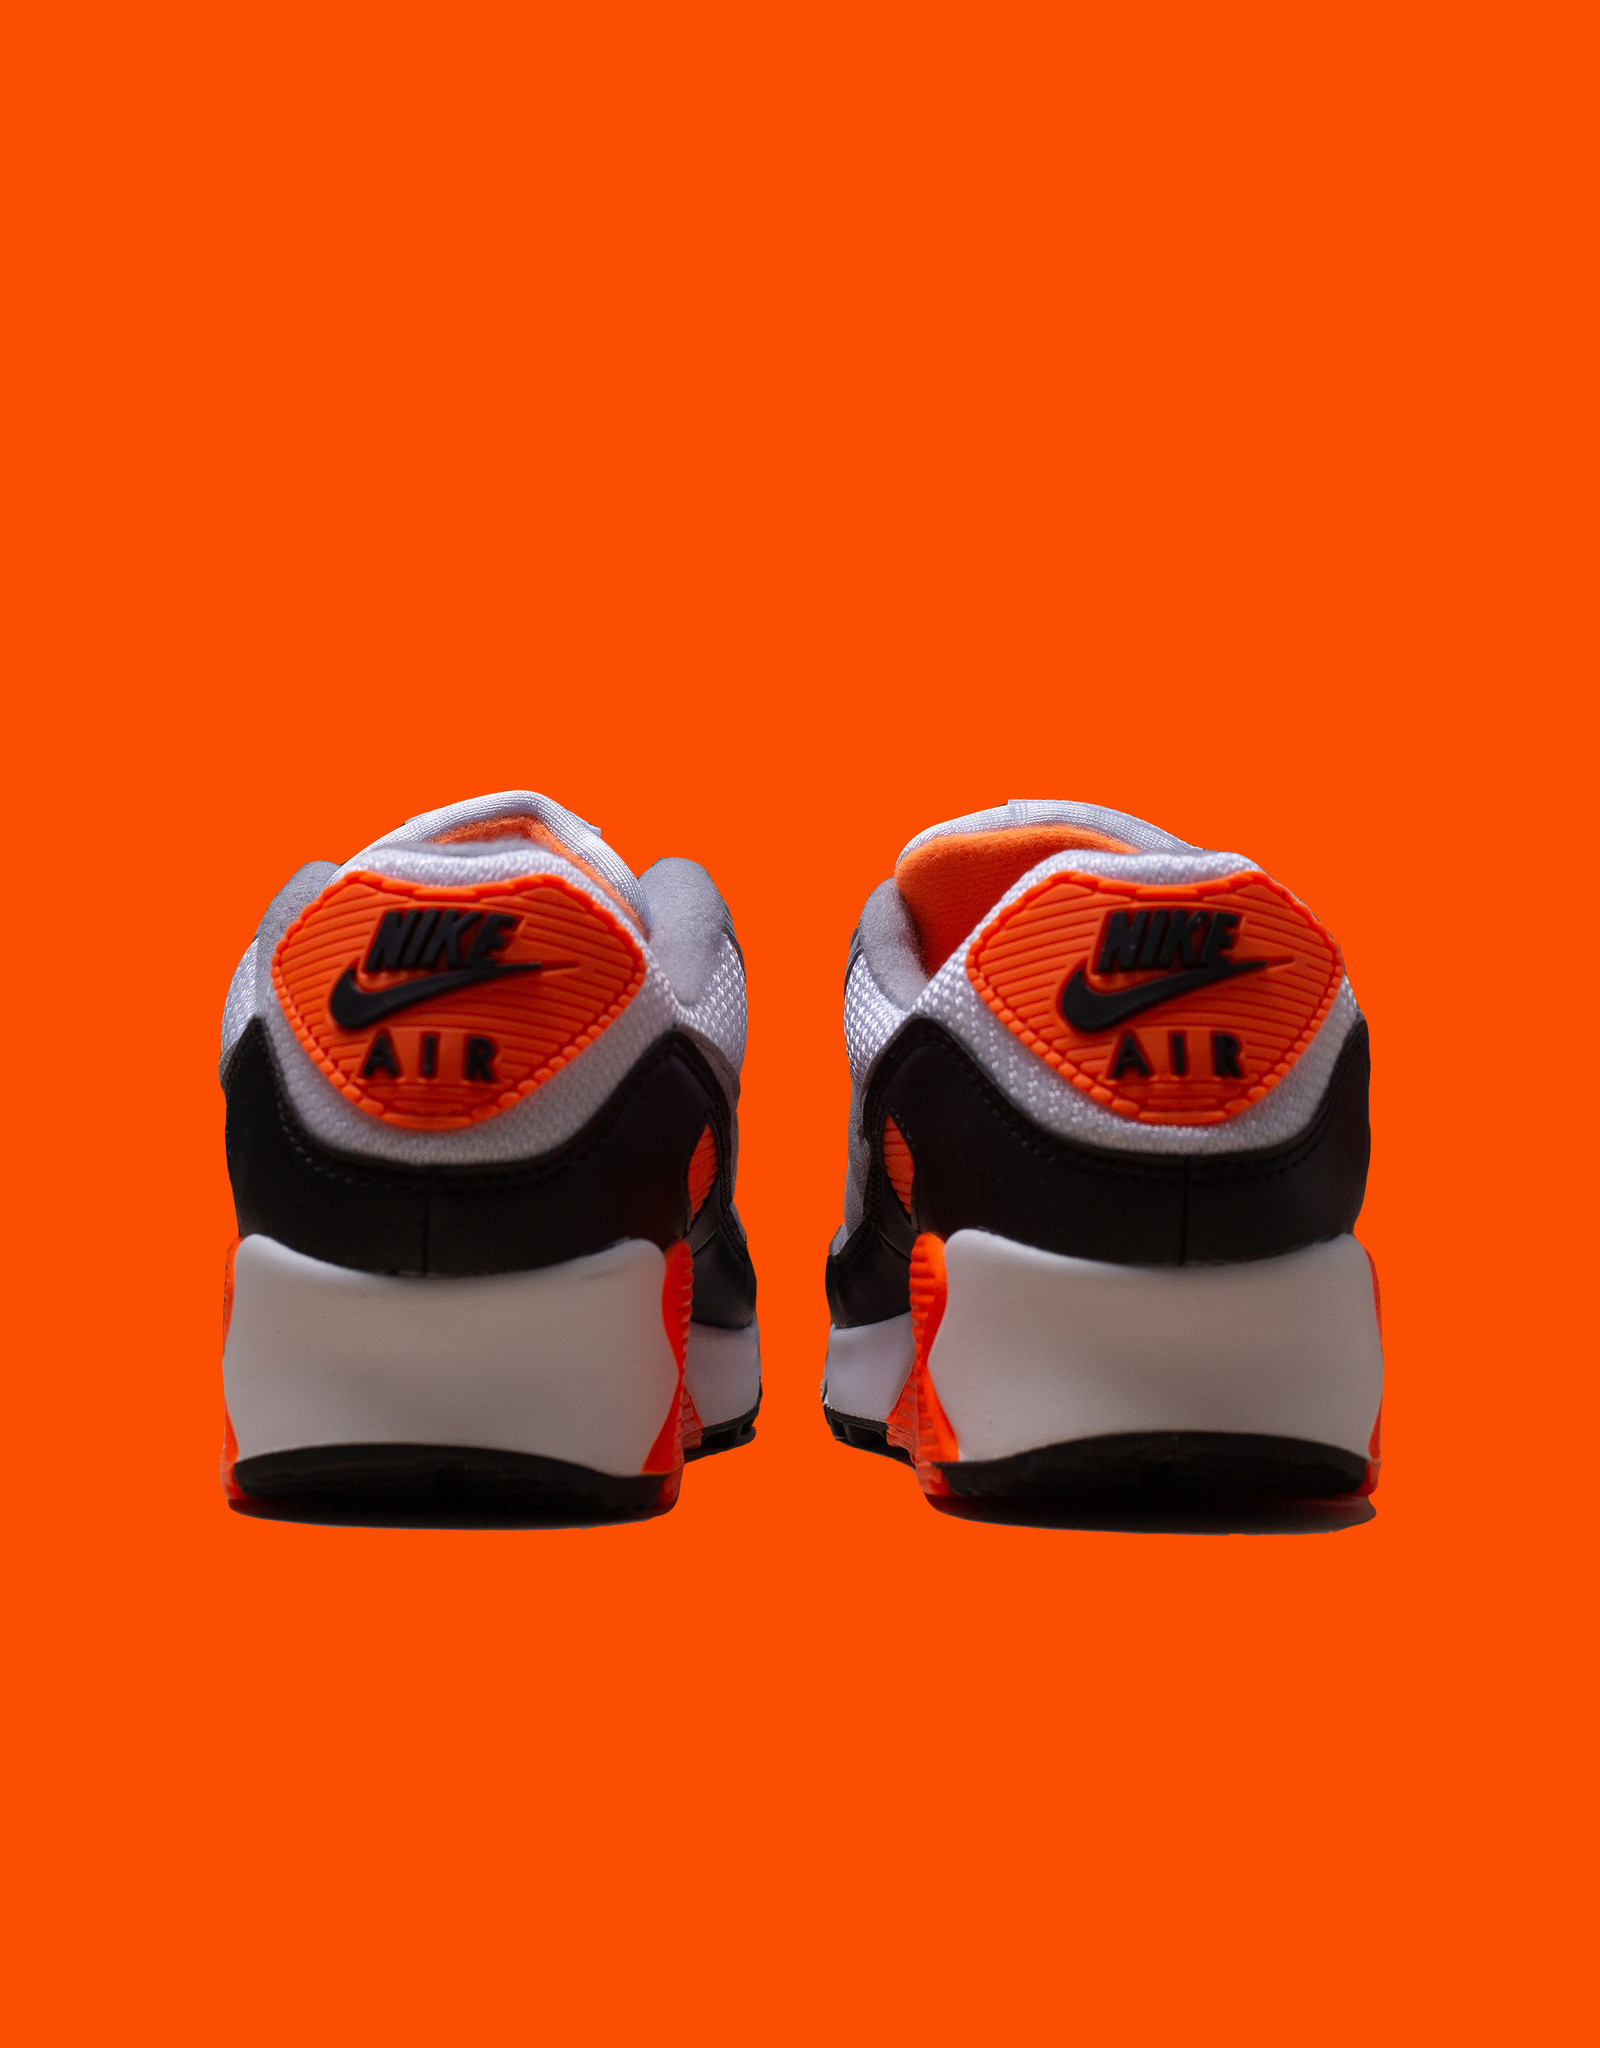 Nike Air Max 90 Orange/Smoke Grey